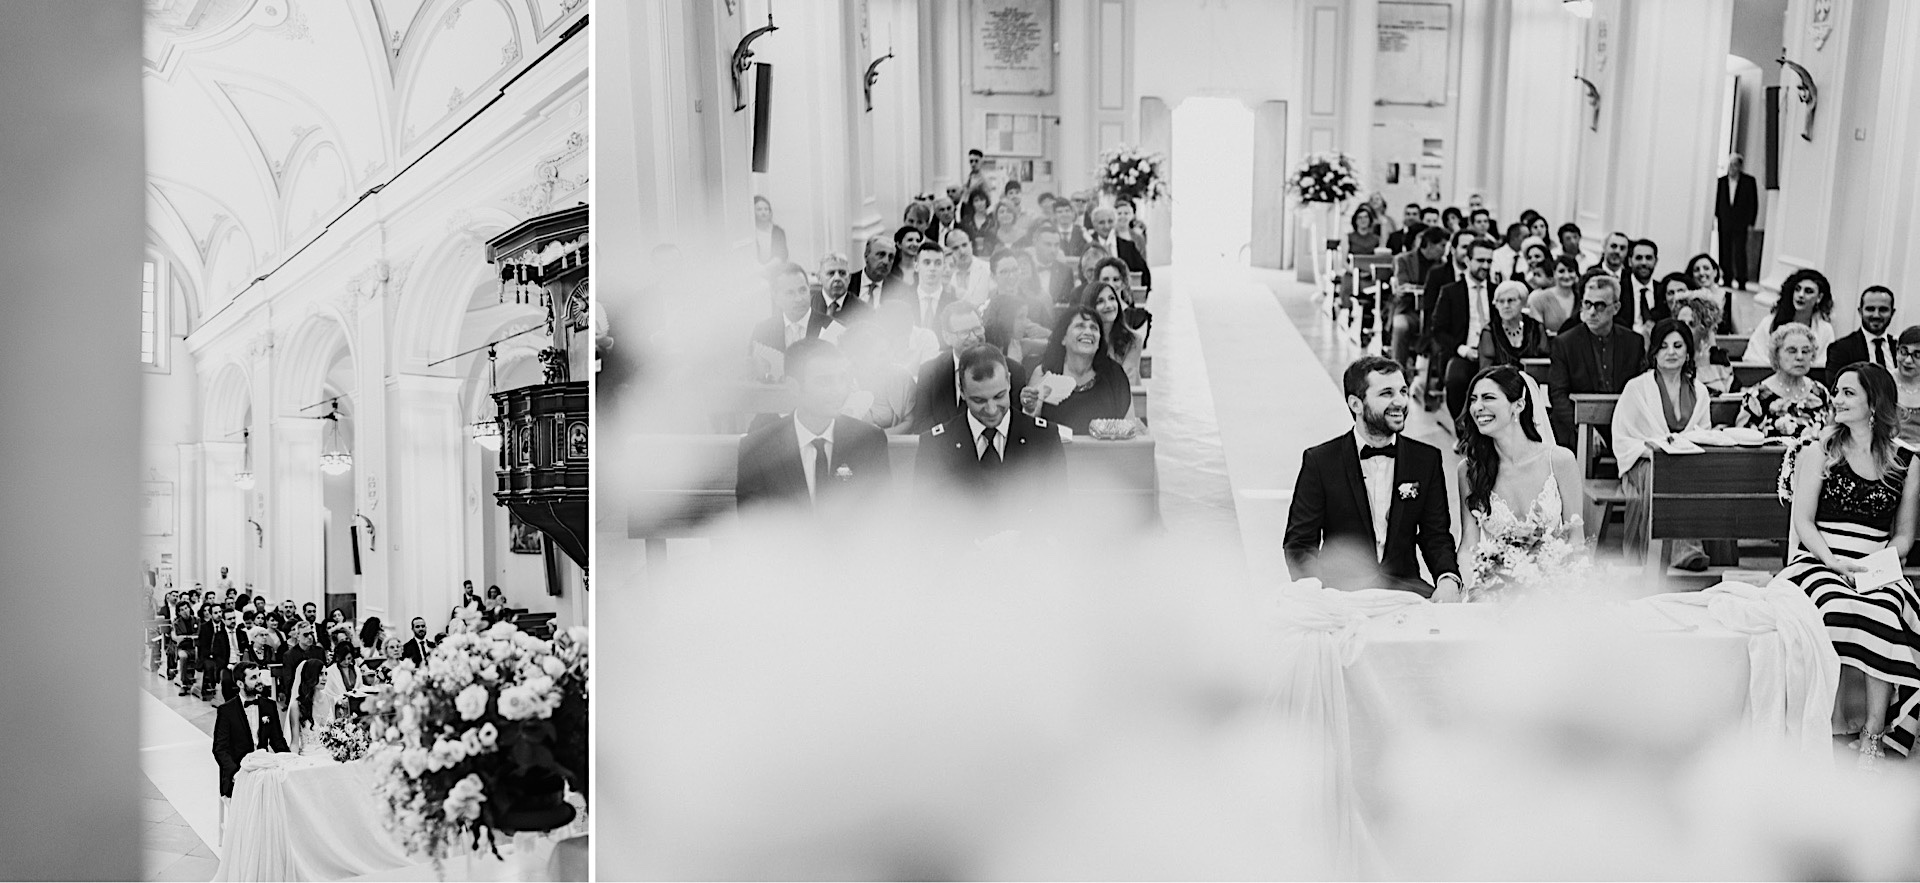 35__DSC9130__DSC9123_photography_destination_photographer_puglia_apulian_marriage_wedding